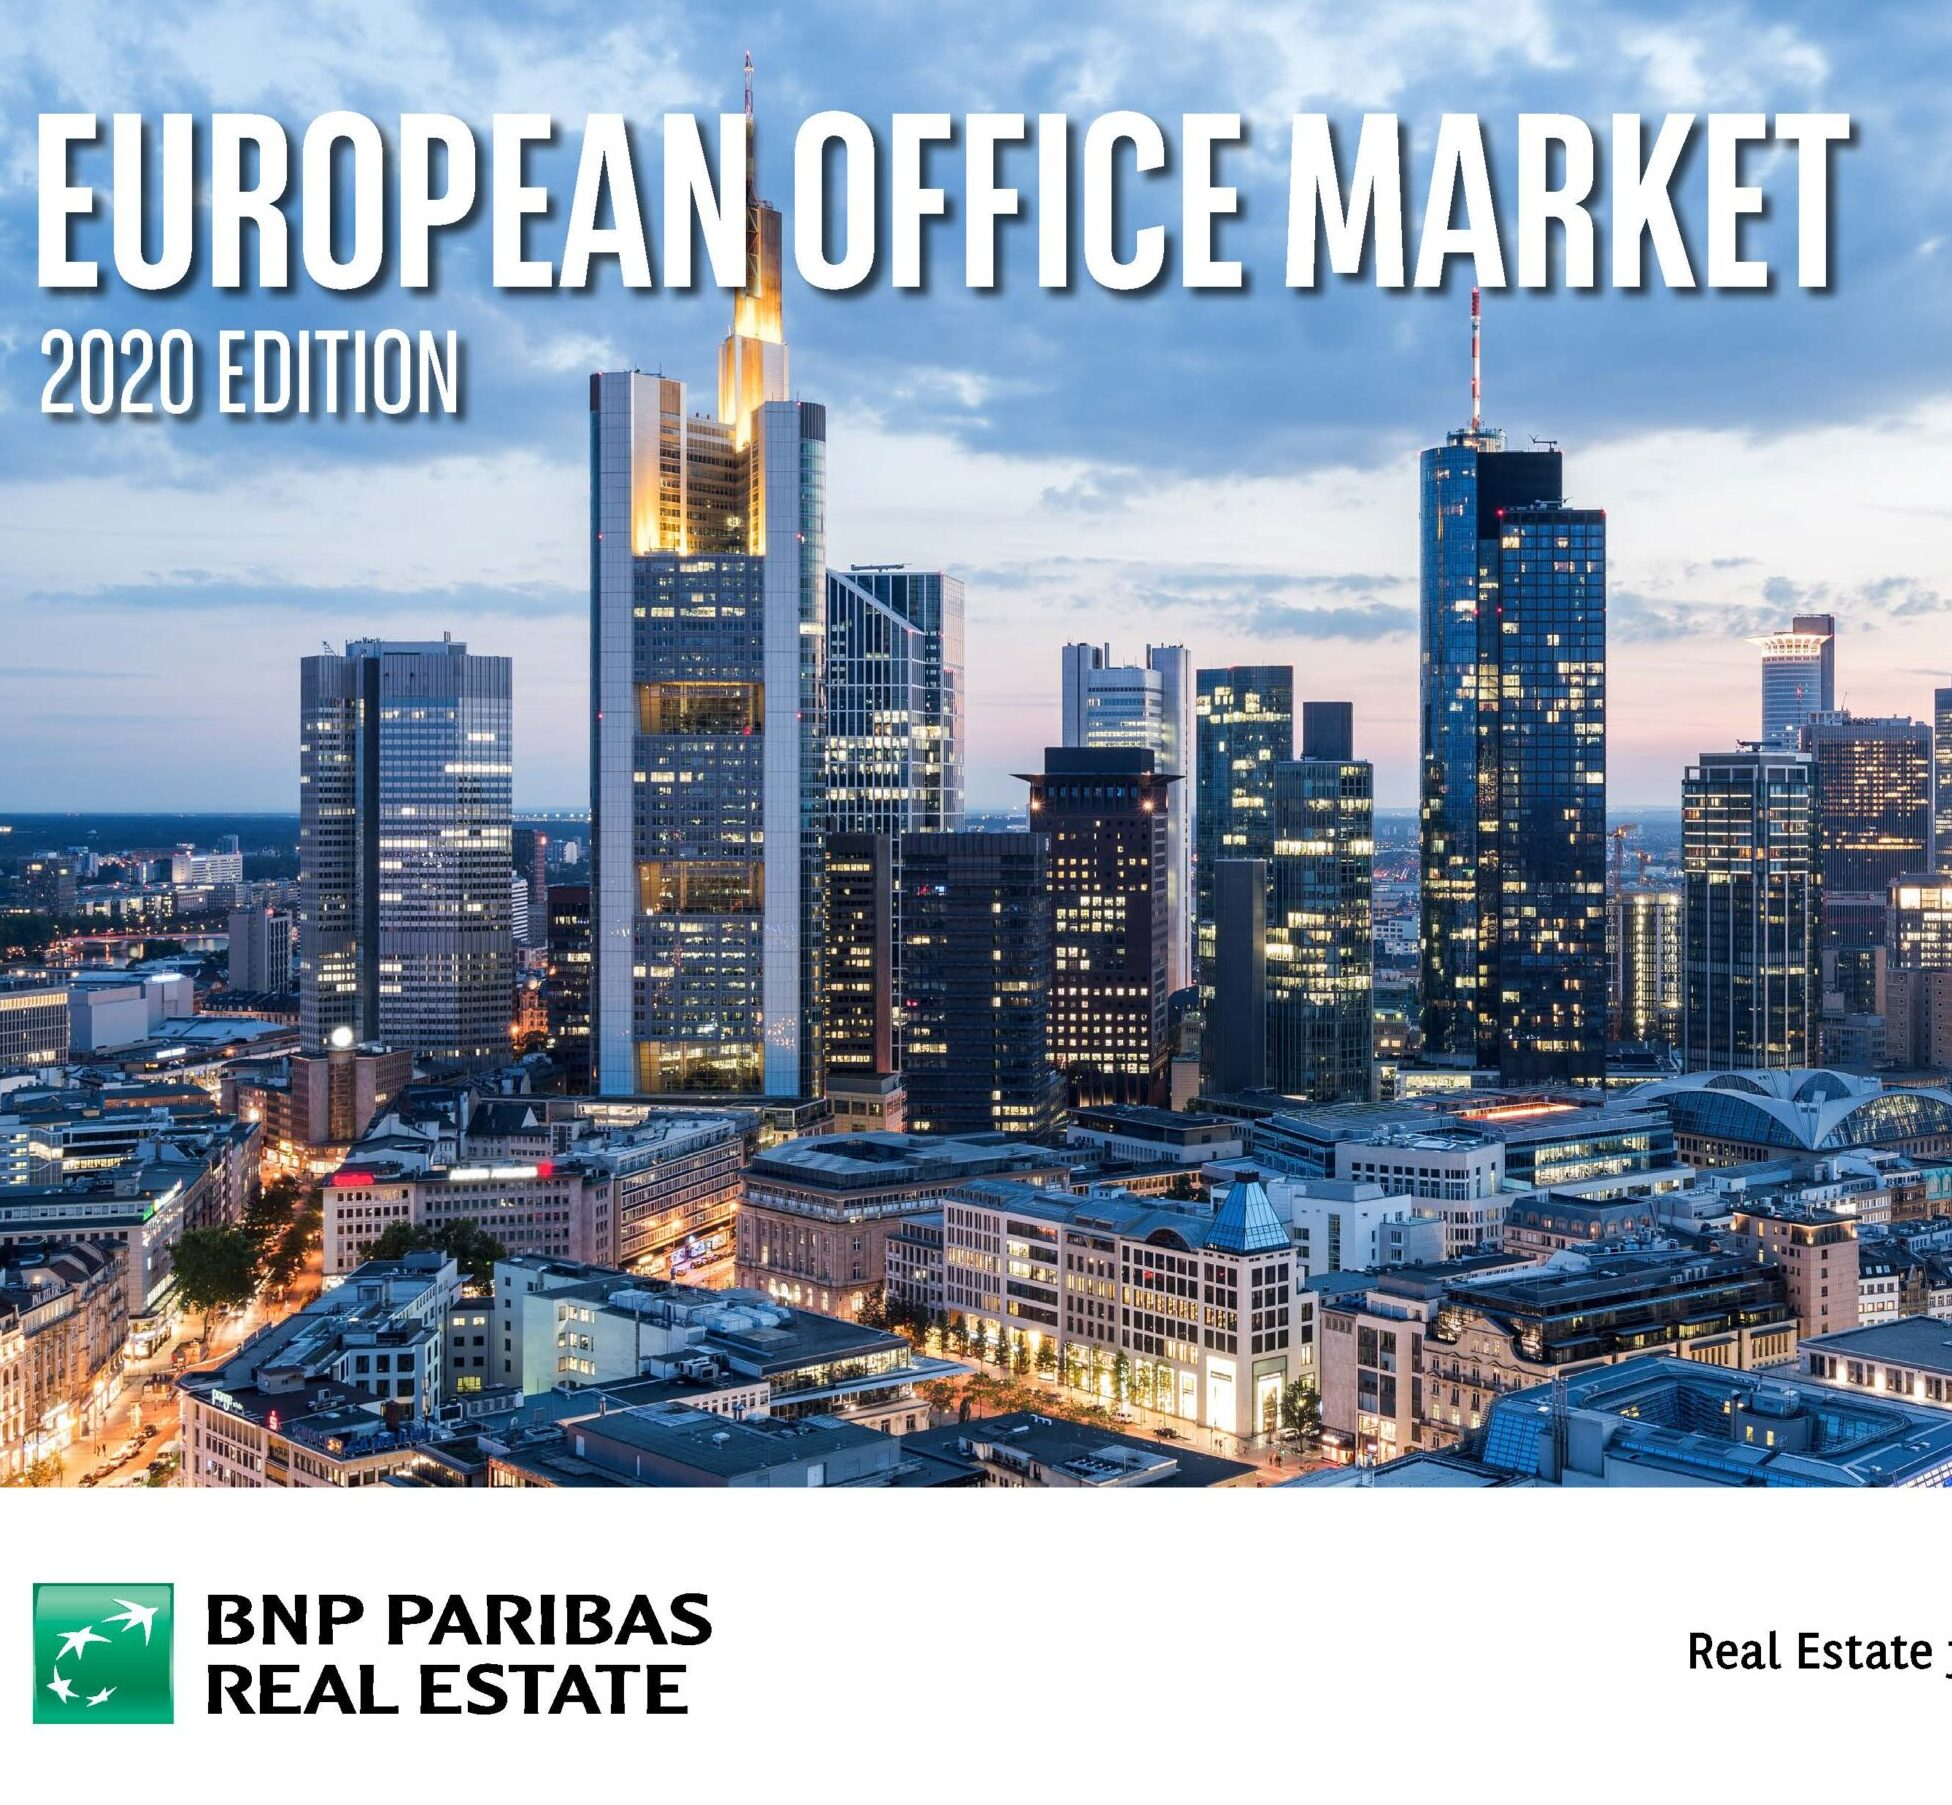 European Office Market